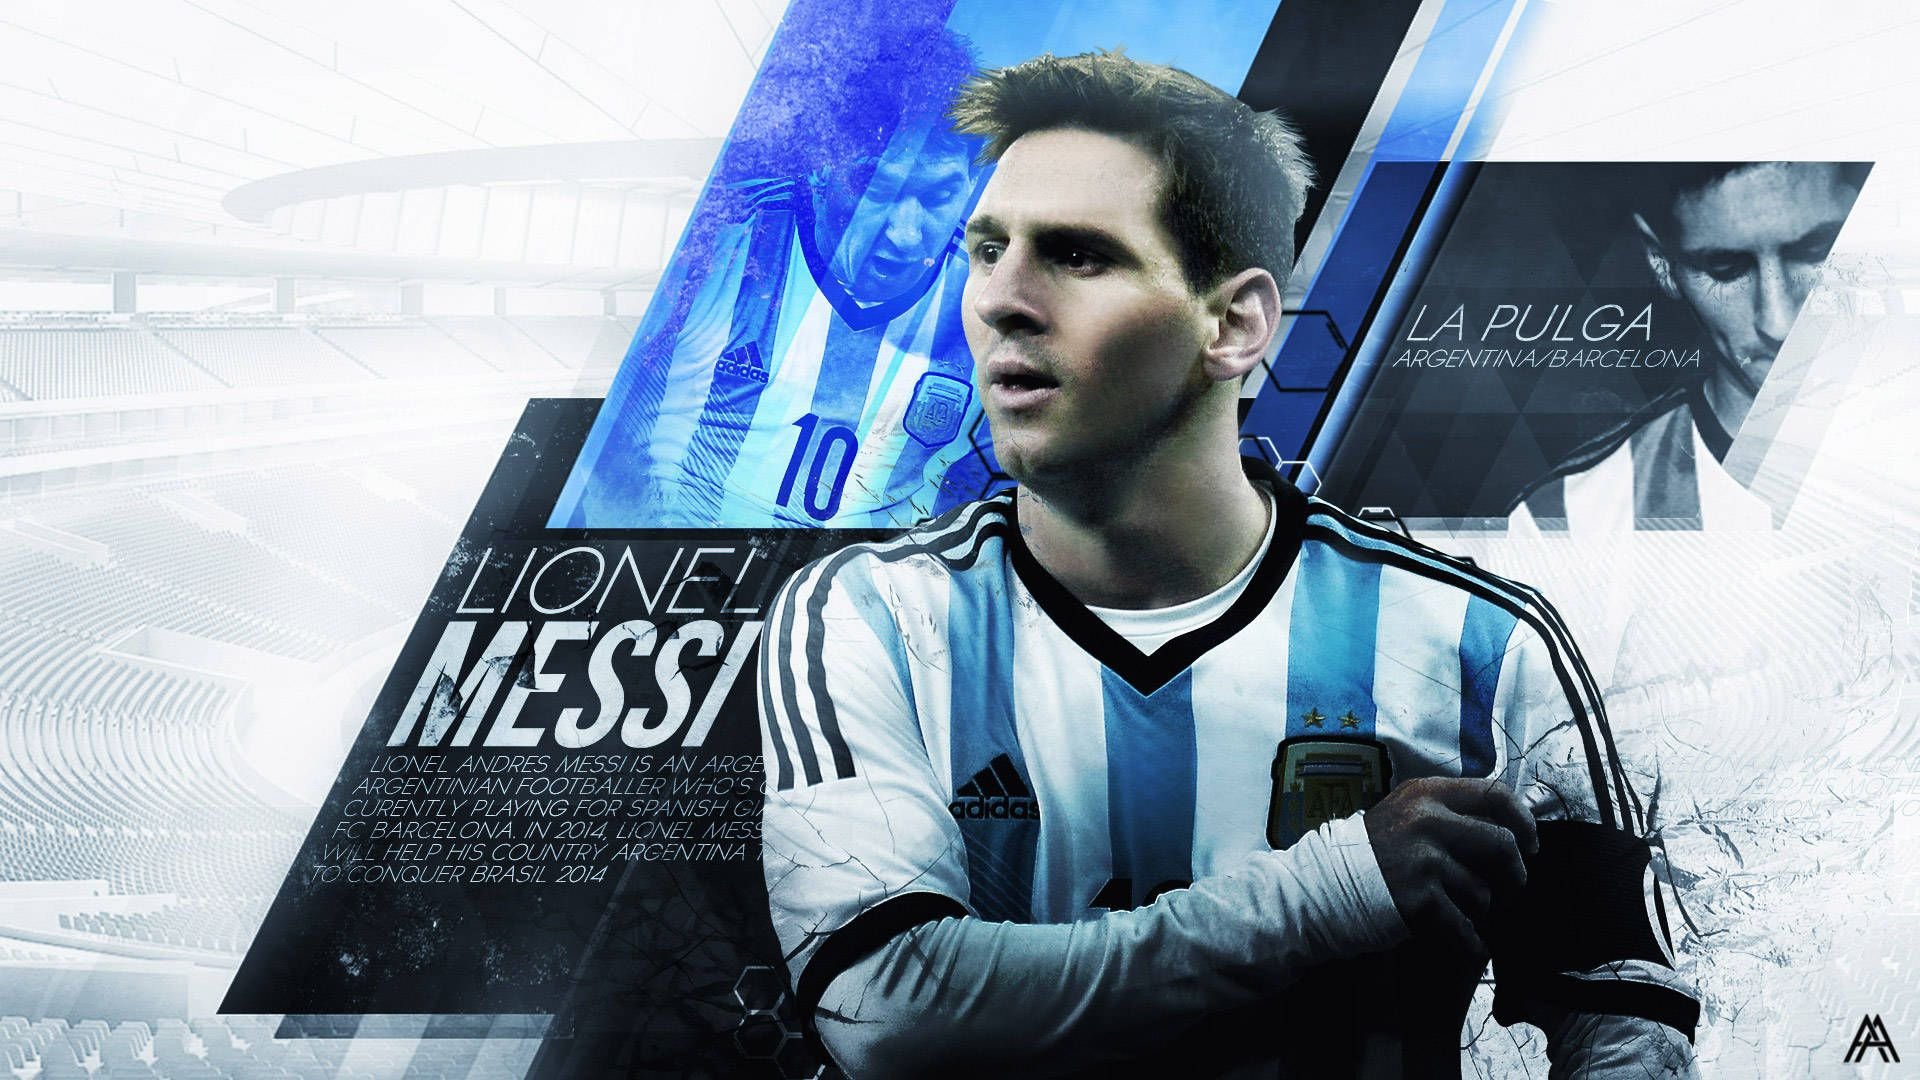 Messi Argentina Wallpaper Lionel Messi Wallpapers Lionel Messi